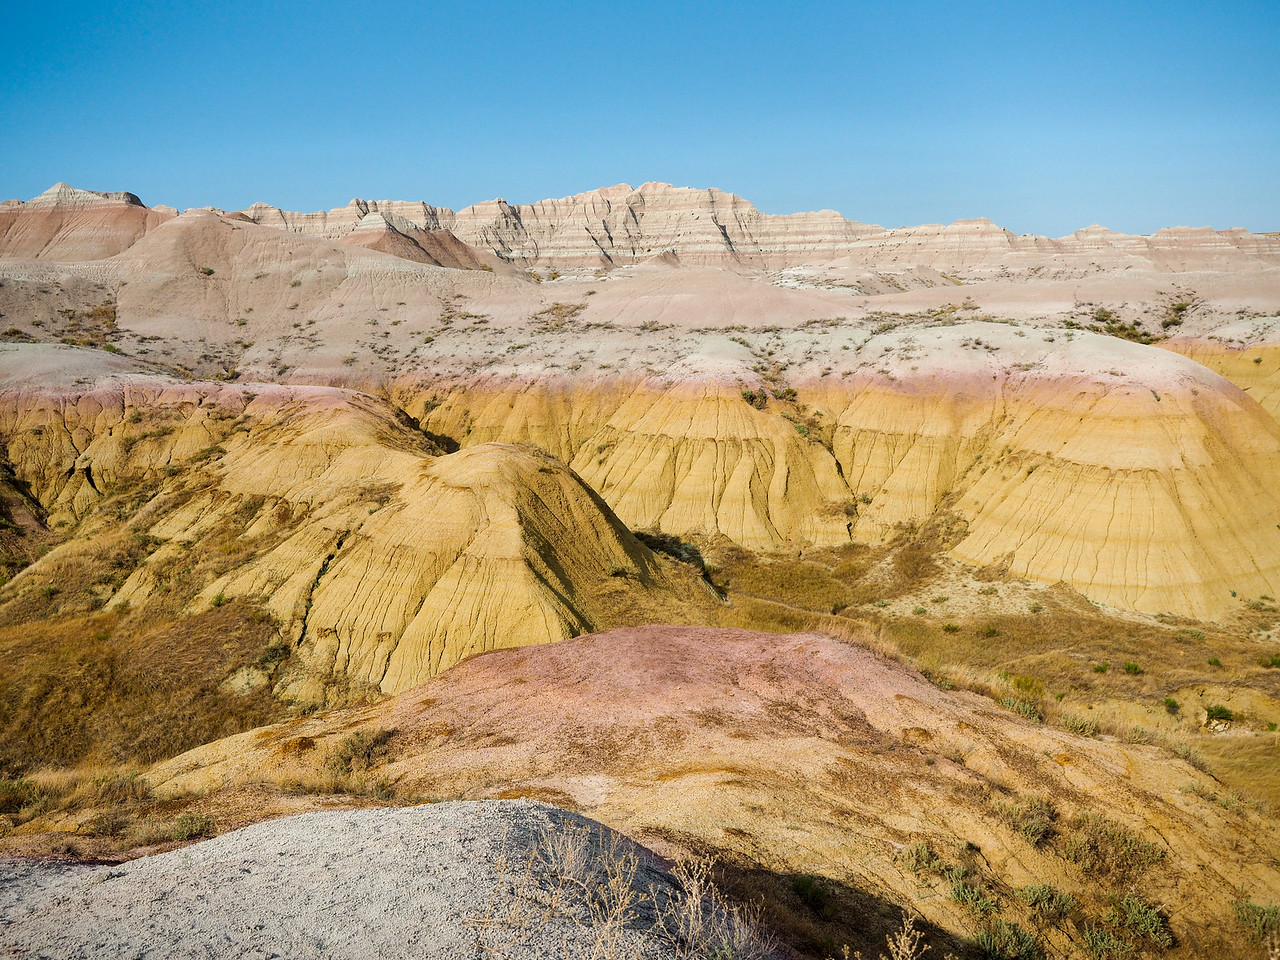 Yellow Mounds at Badlands National Park